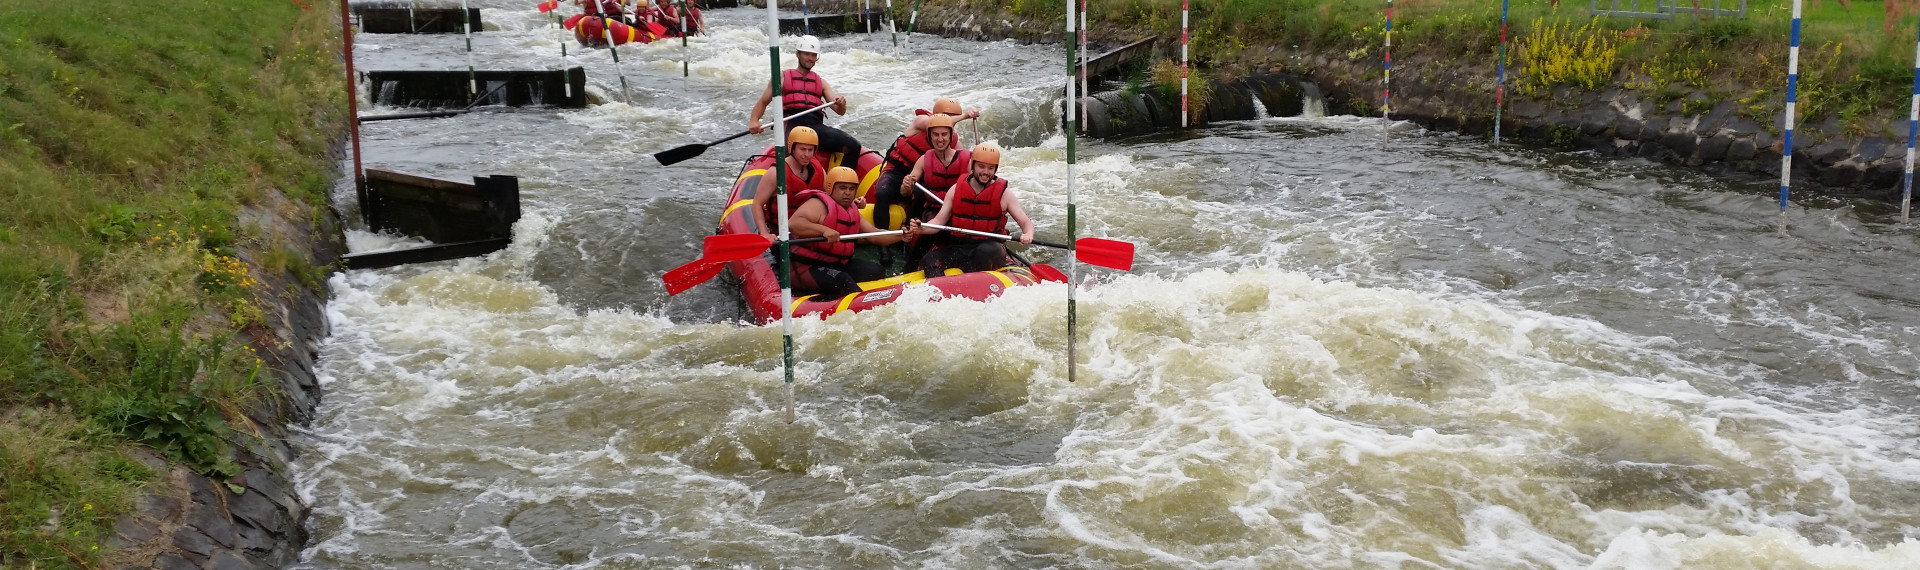 White Water Extreme Rafting Prague